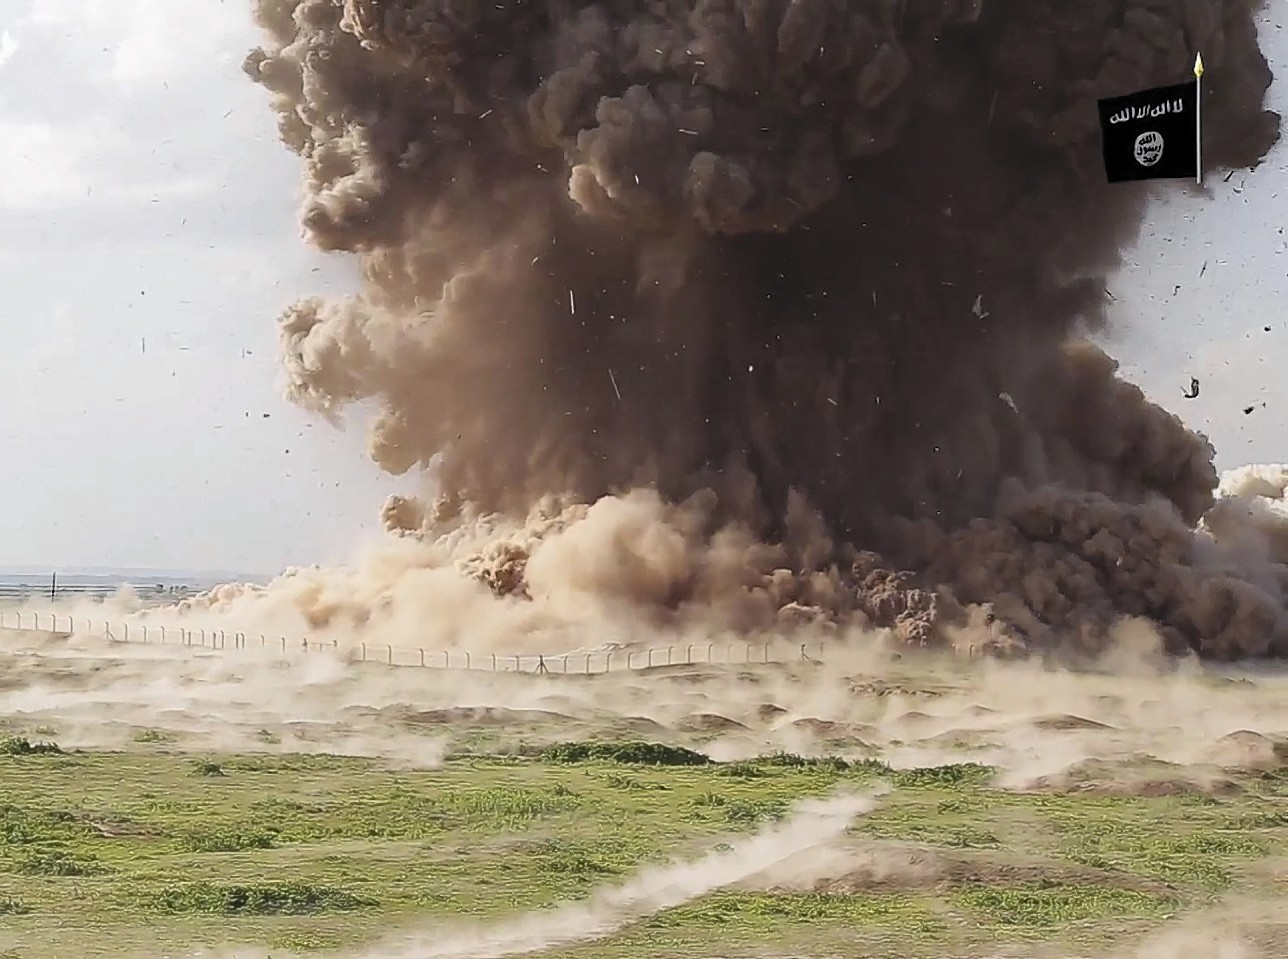 The destruction at Nimrud, follows other attacks on antiquity carried out by the group now holding a third of Iraq and neighboring Syria in its self-declared caliphate.